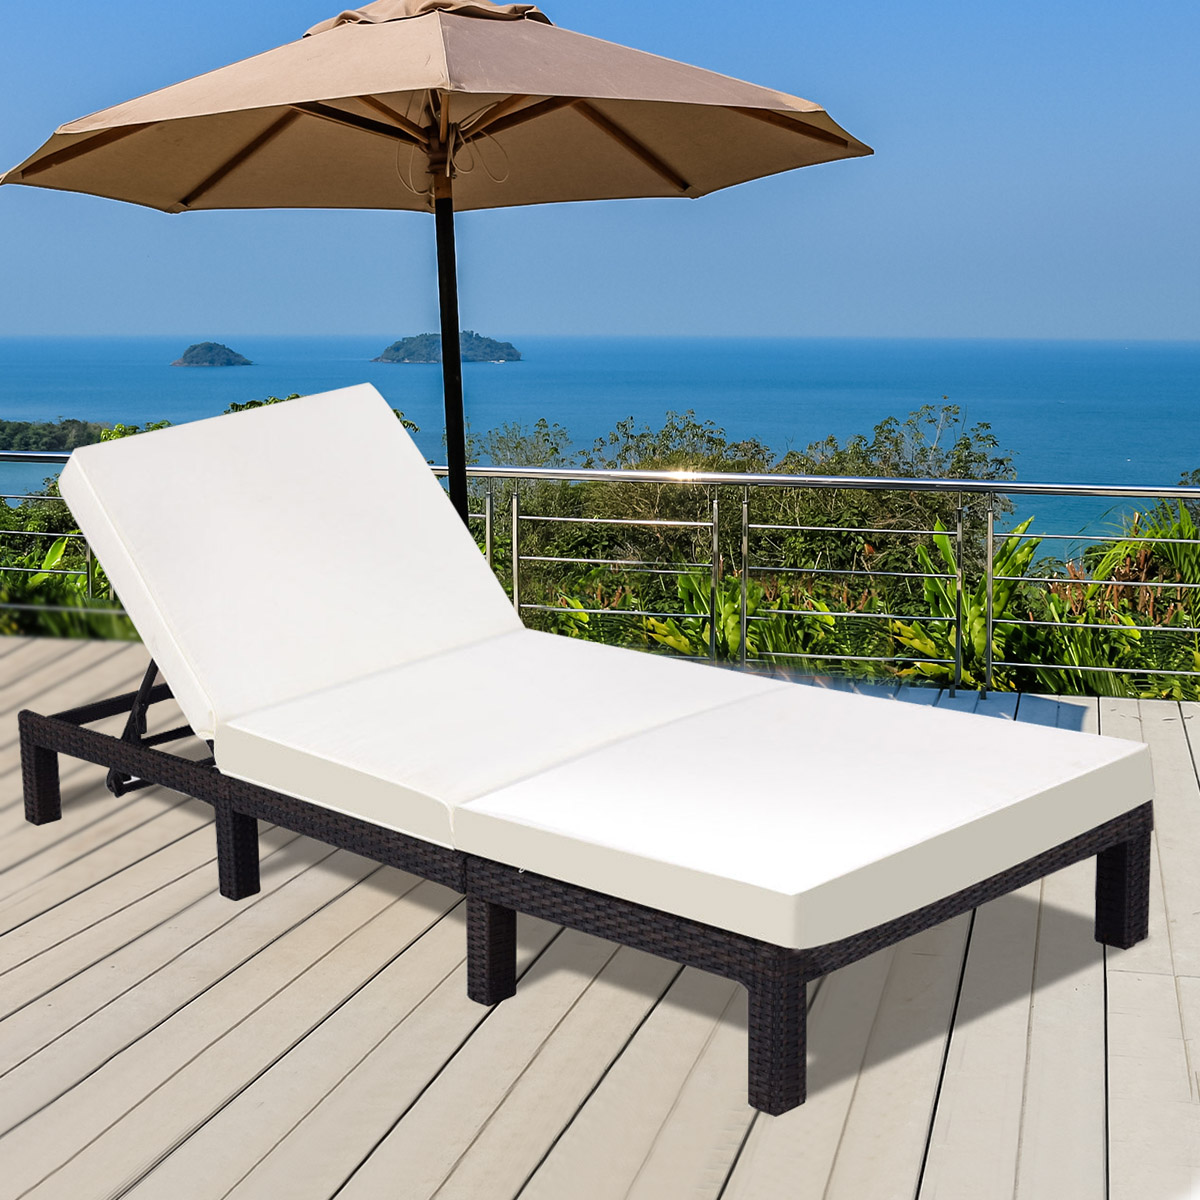 Gymax Adjustable Chaise Lounge Poolside Couch  Patio Wicker Furniture Set with Cushion Outdoor